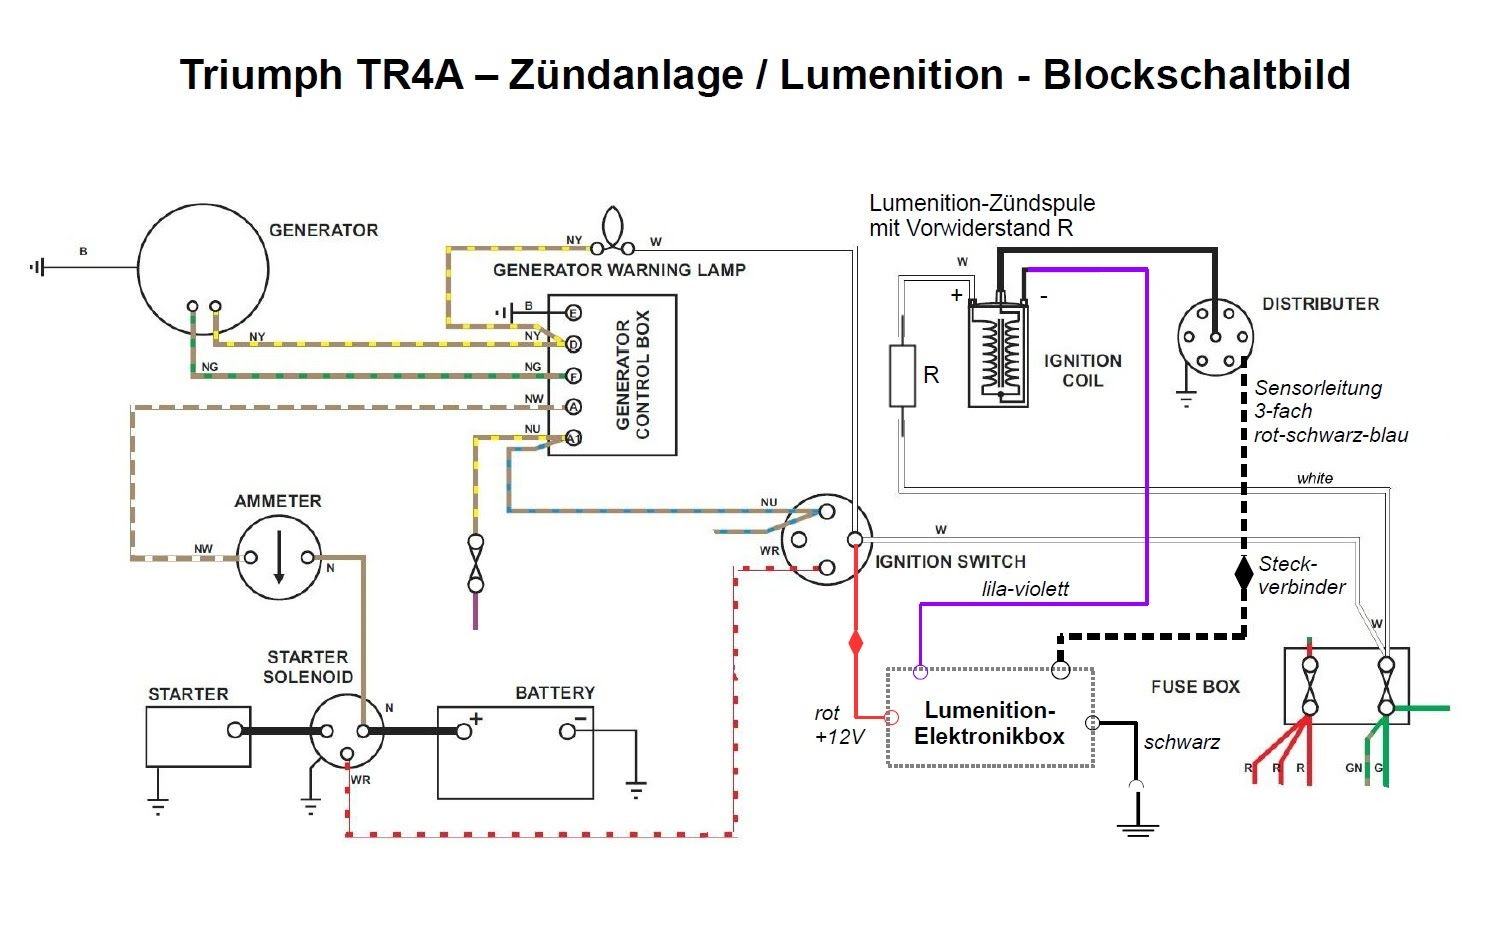 hight resolution of lumenition optronic wiring diagram electrical wiring diagrams delphi wiring diagram lumenition ignition wiring diagram